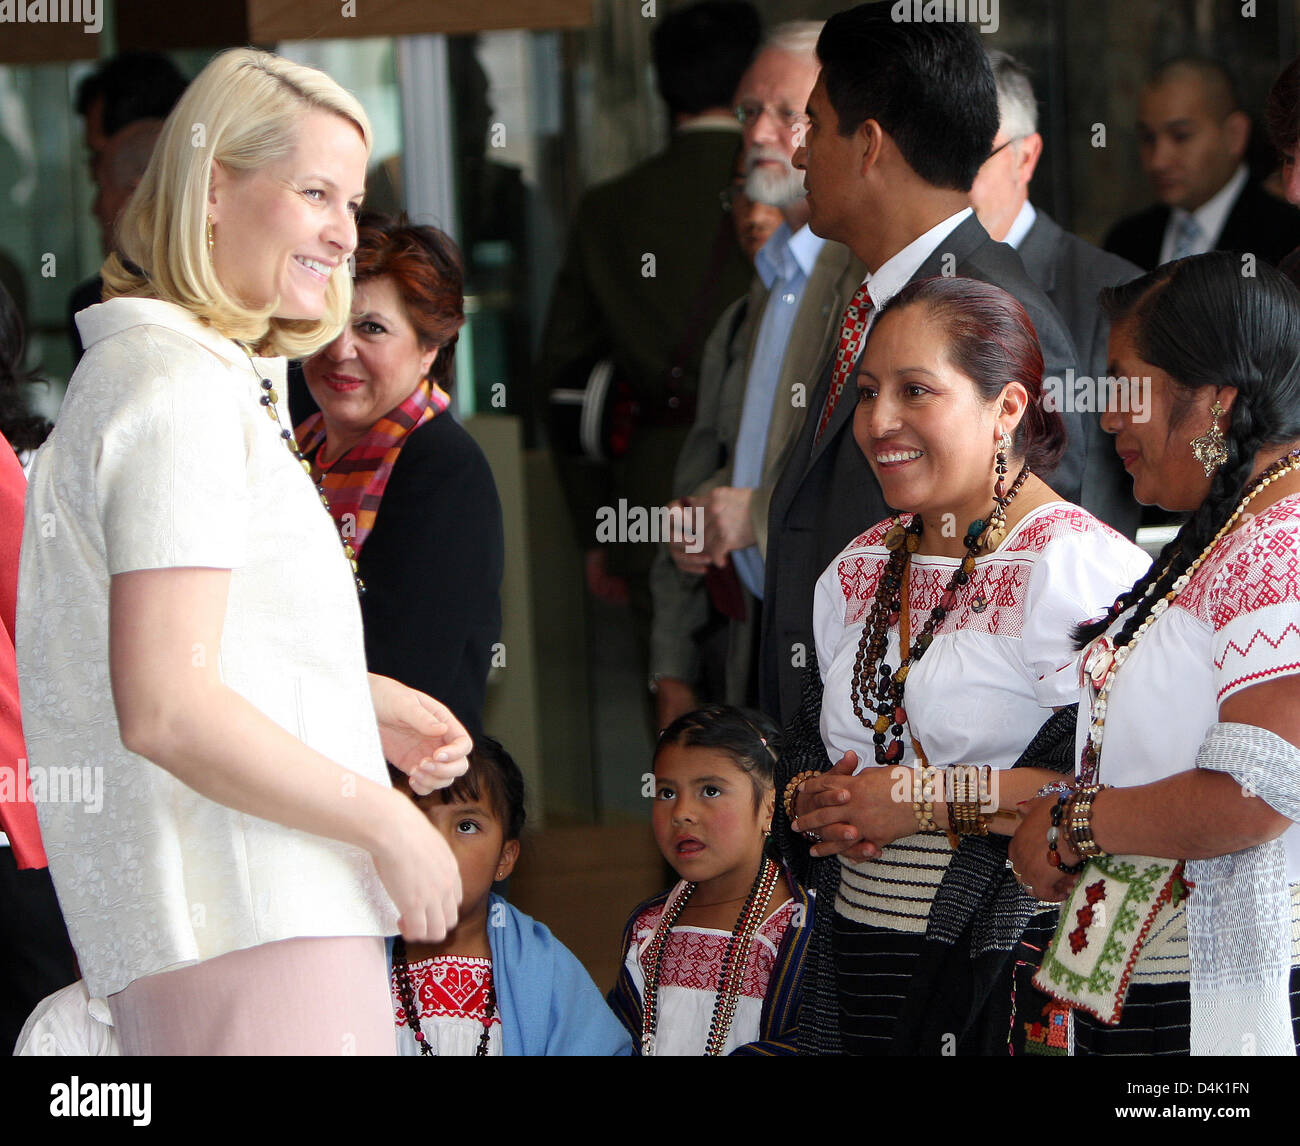 Norwegian Crown Princess Mette-Marit visits the National Museum of Anthropology and History in Mexico City, Mexico, - Stock Image